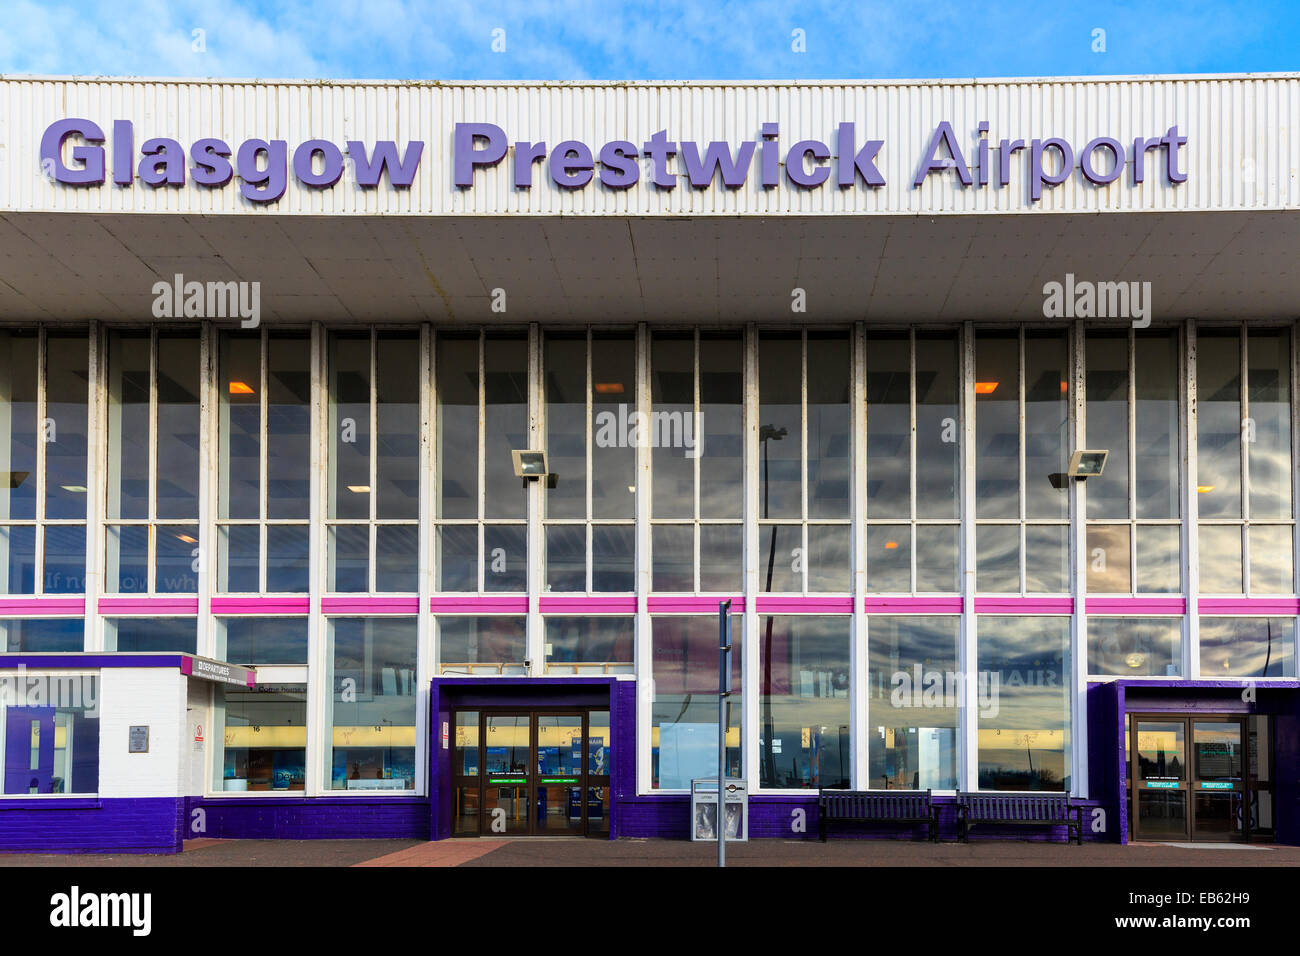 Frnt entrance to Glasgow Prestwick Airport, Prestwick, Ayrshire, Scotland, UK Stock Photo